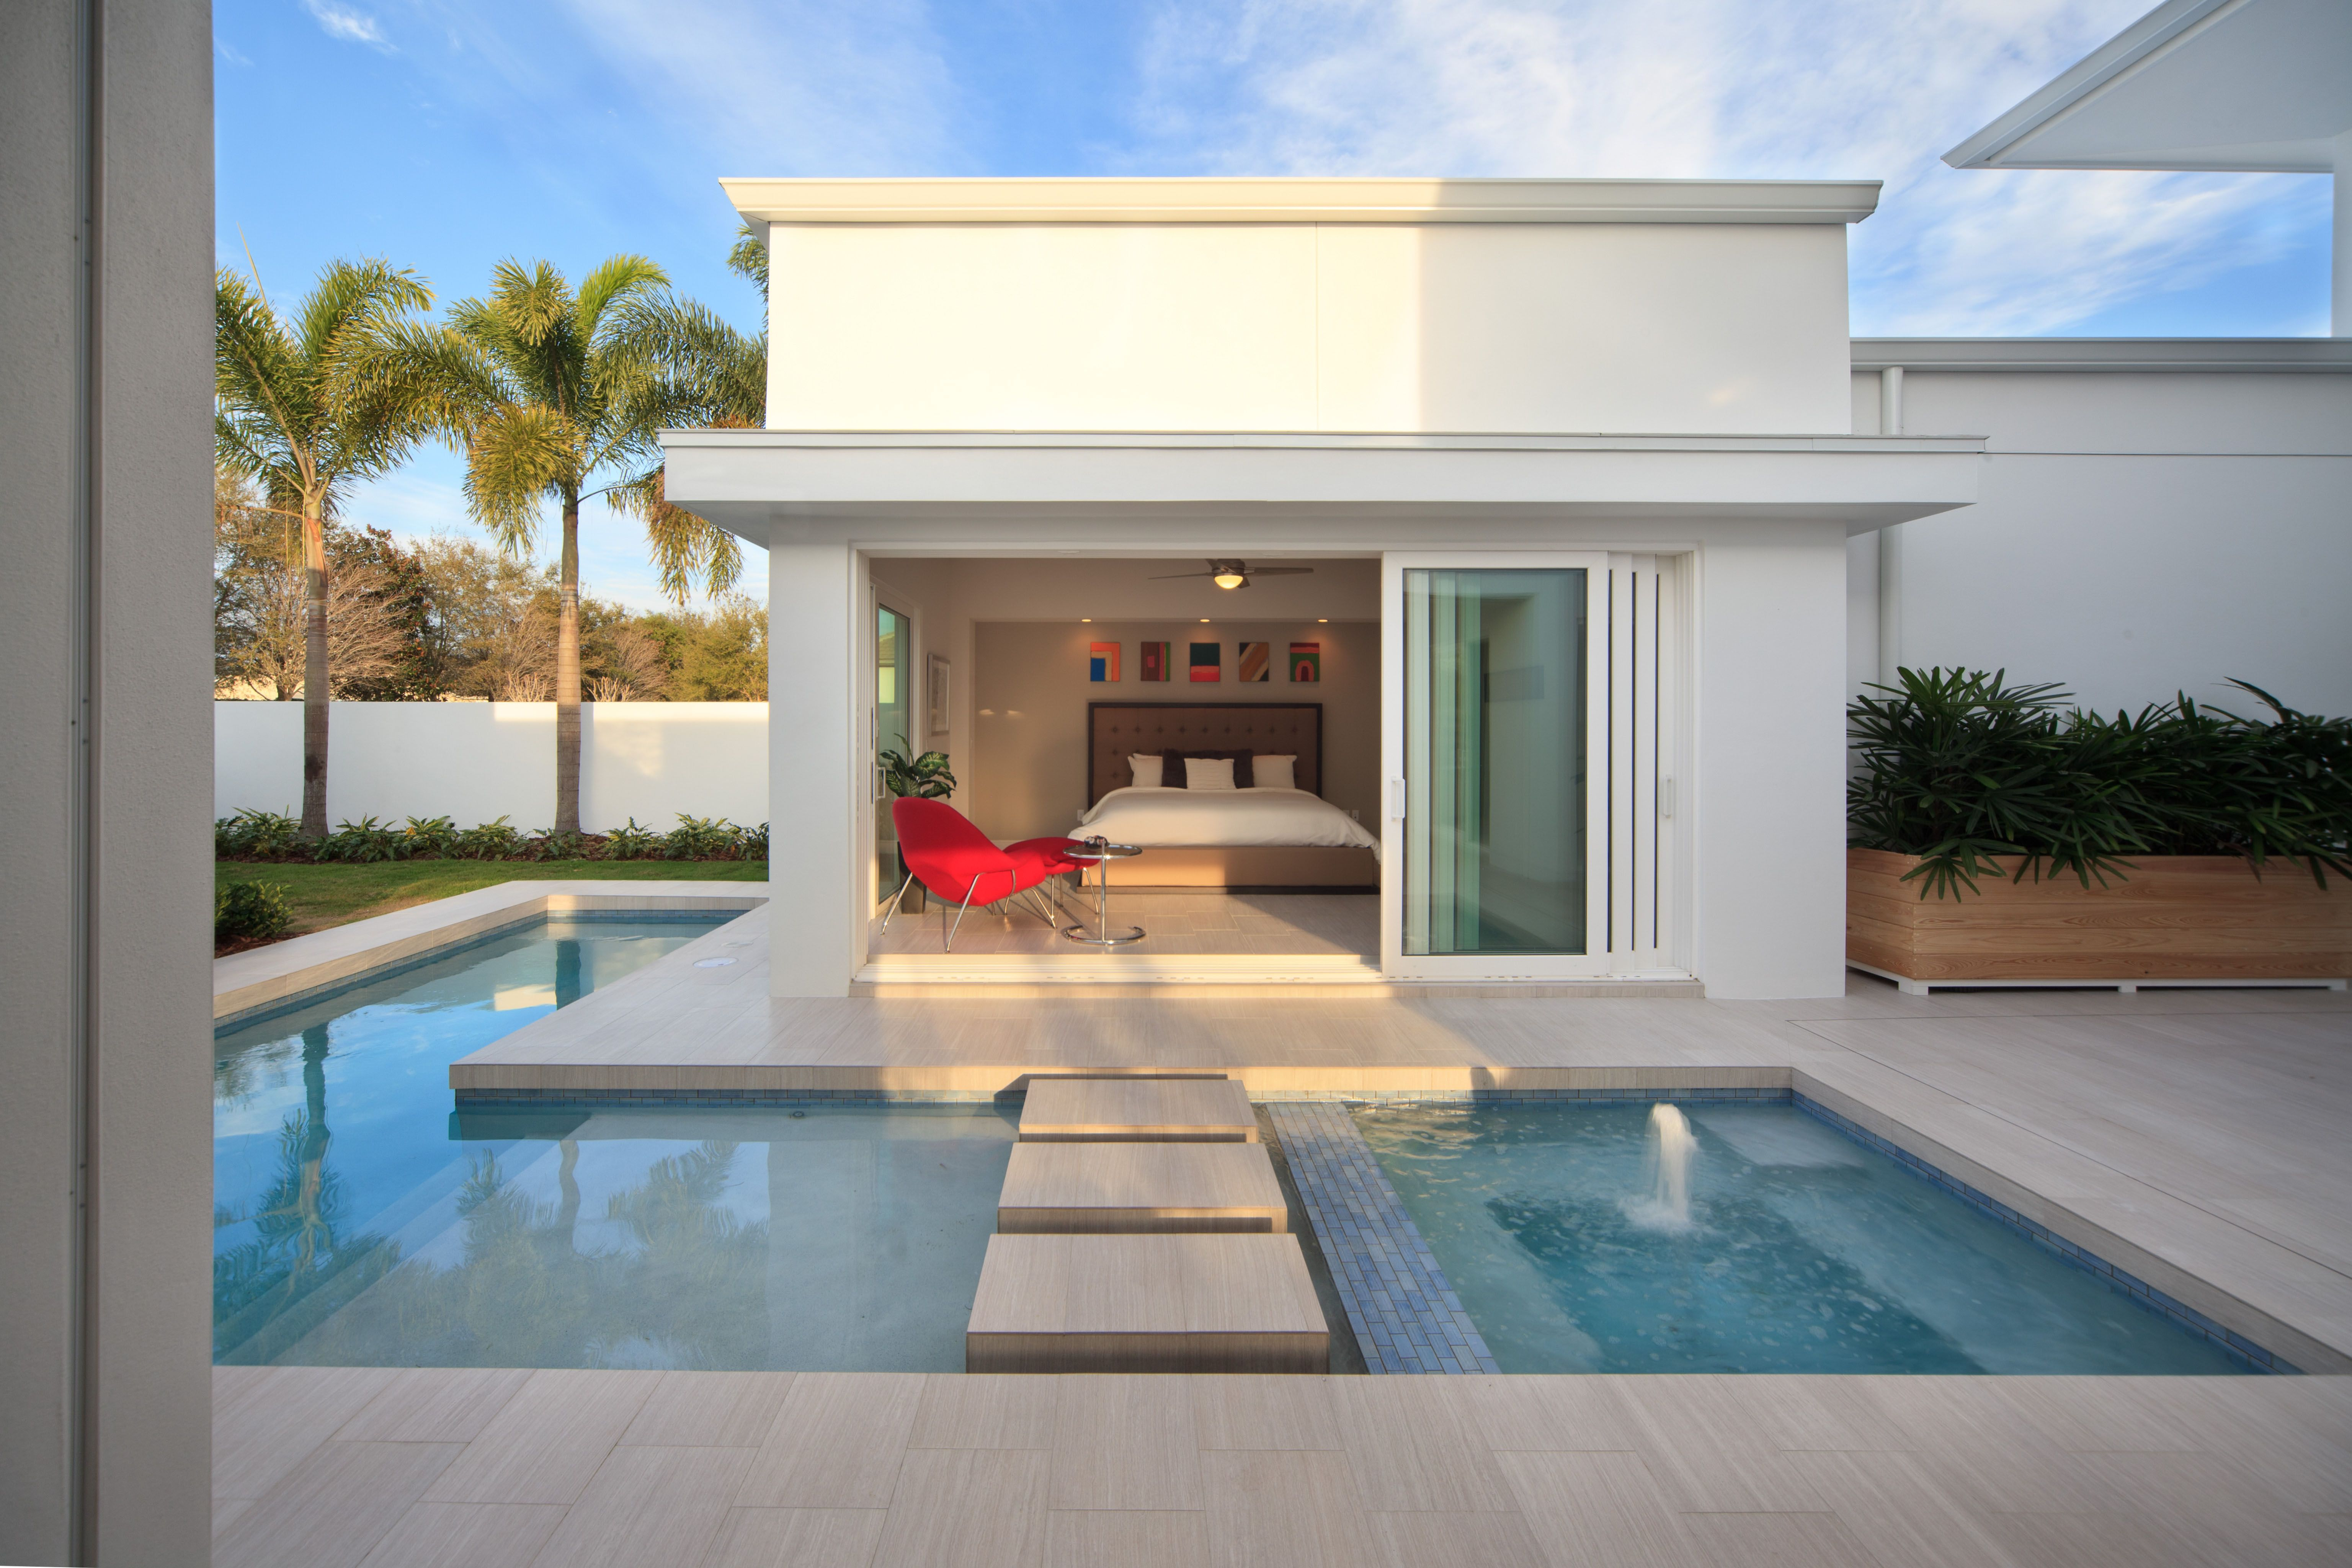 Awesome bedrooms with pools - Master Bedroom Opens Onto The Swimming Pool And The Expansive Lanai Spaces That Flank The Pool